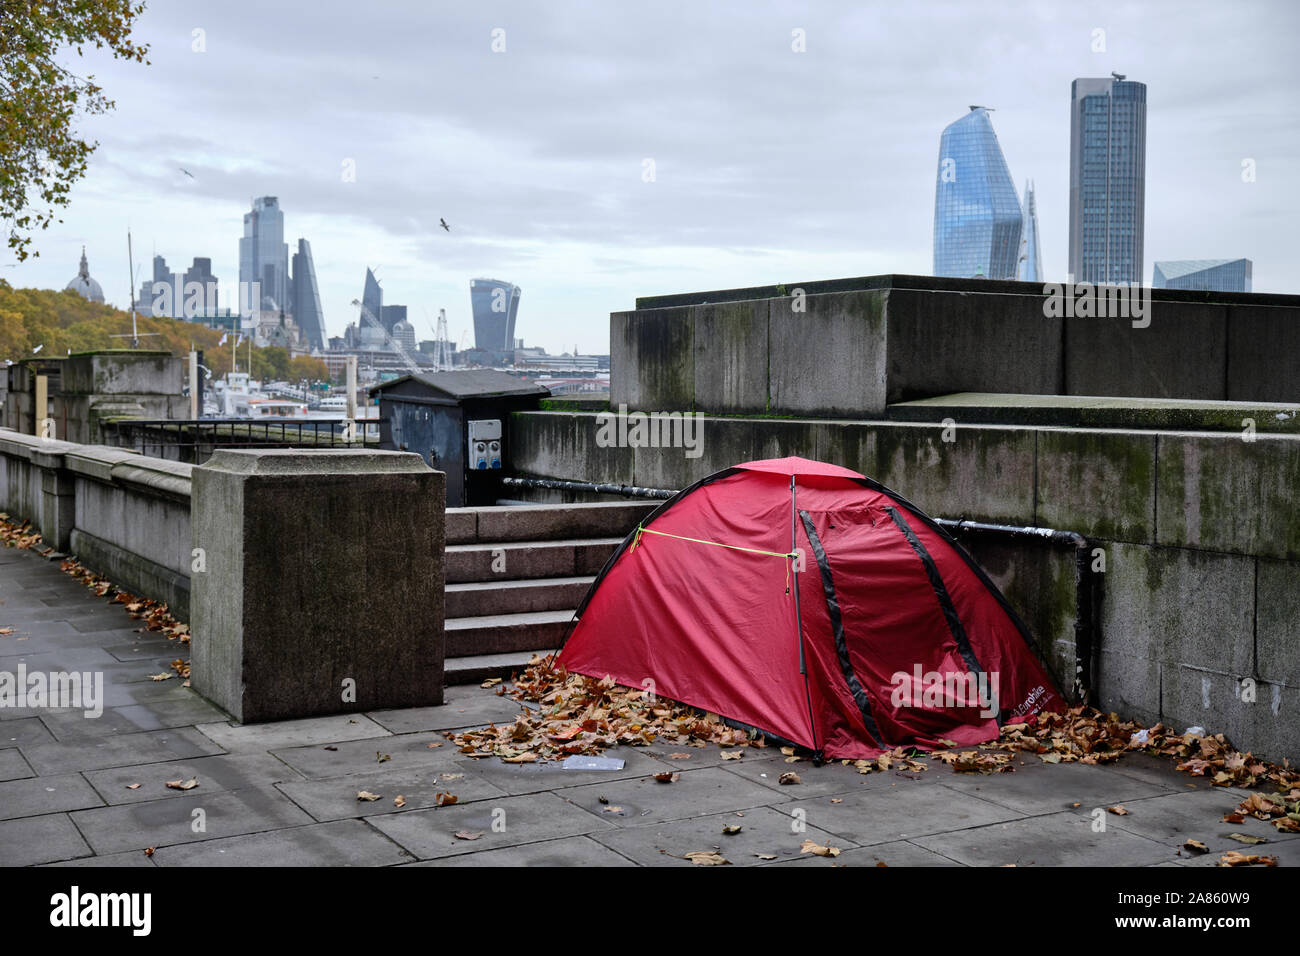 tent-set-up-by-homeless-person-in-public-space-in-london-by-thames-river-on-autumn-grey-day-with-skyline-in-background-2A860W9.jpg